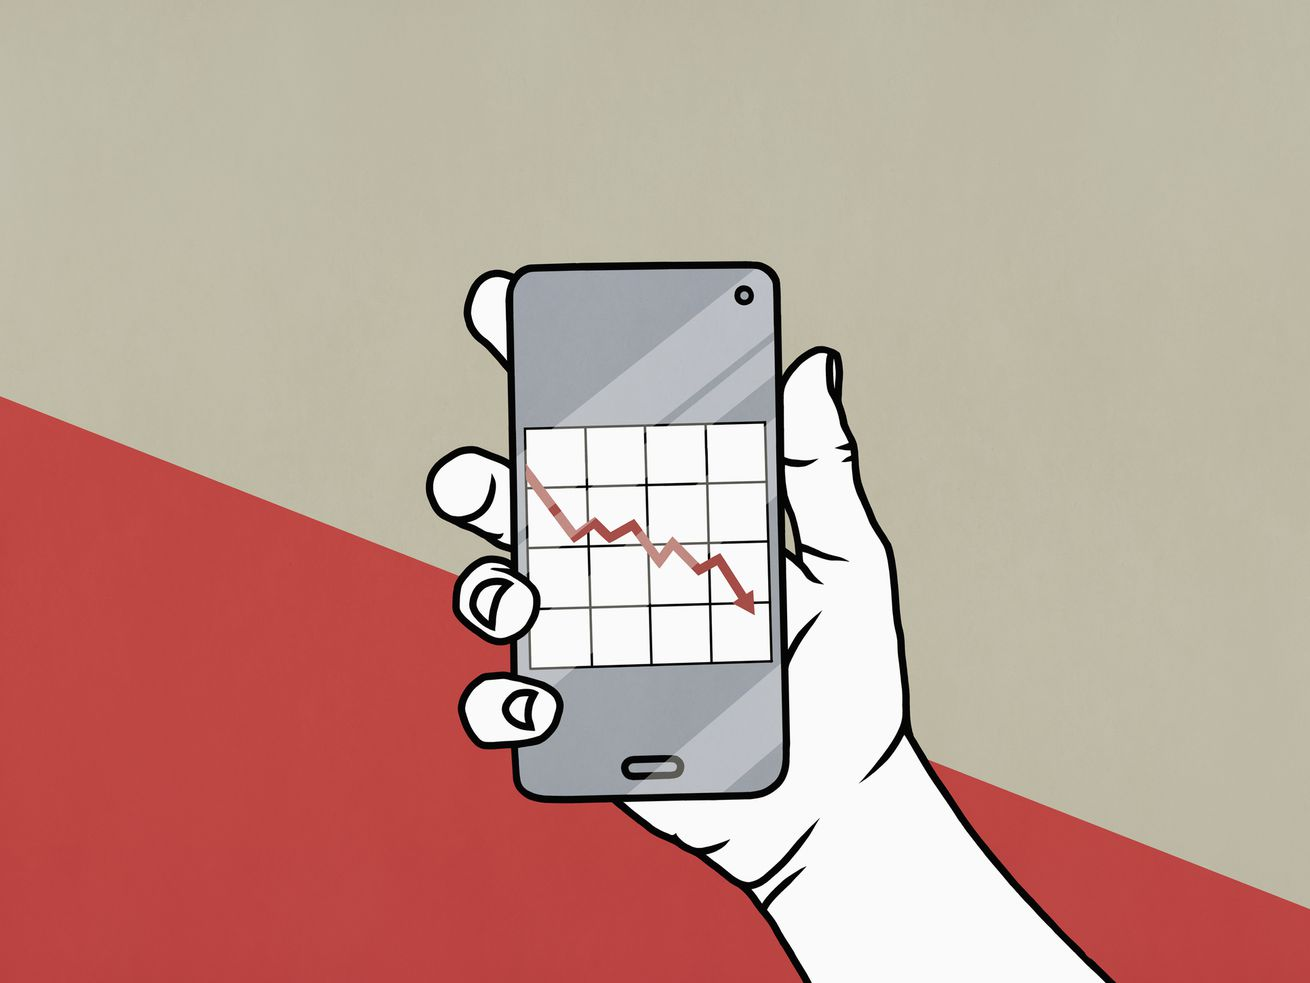 A drawing of a hand holding a smartphone displaying a downward-trending graph.